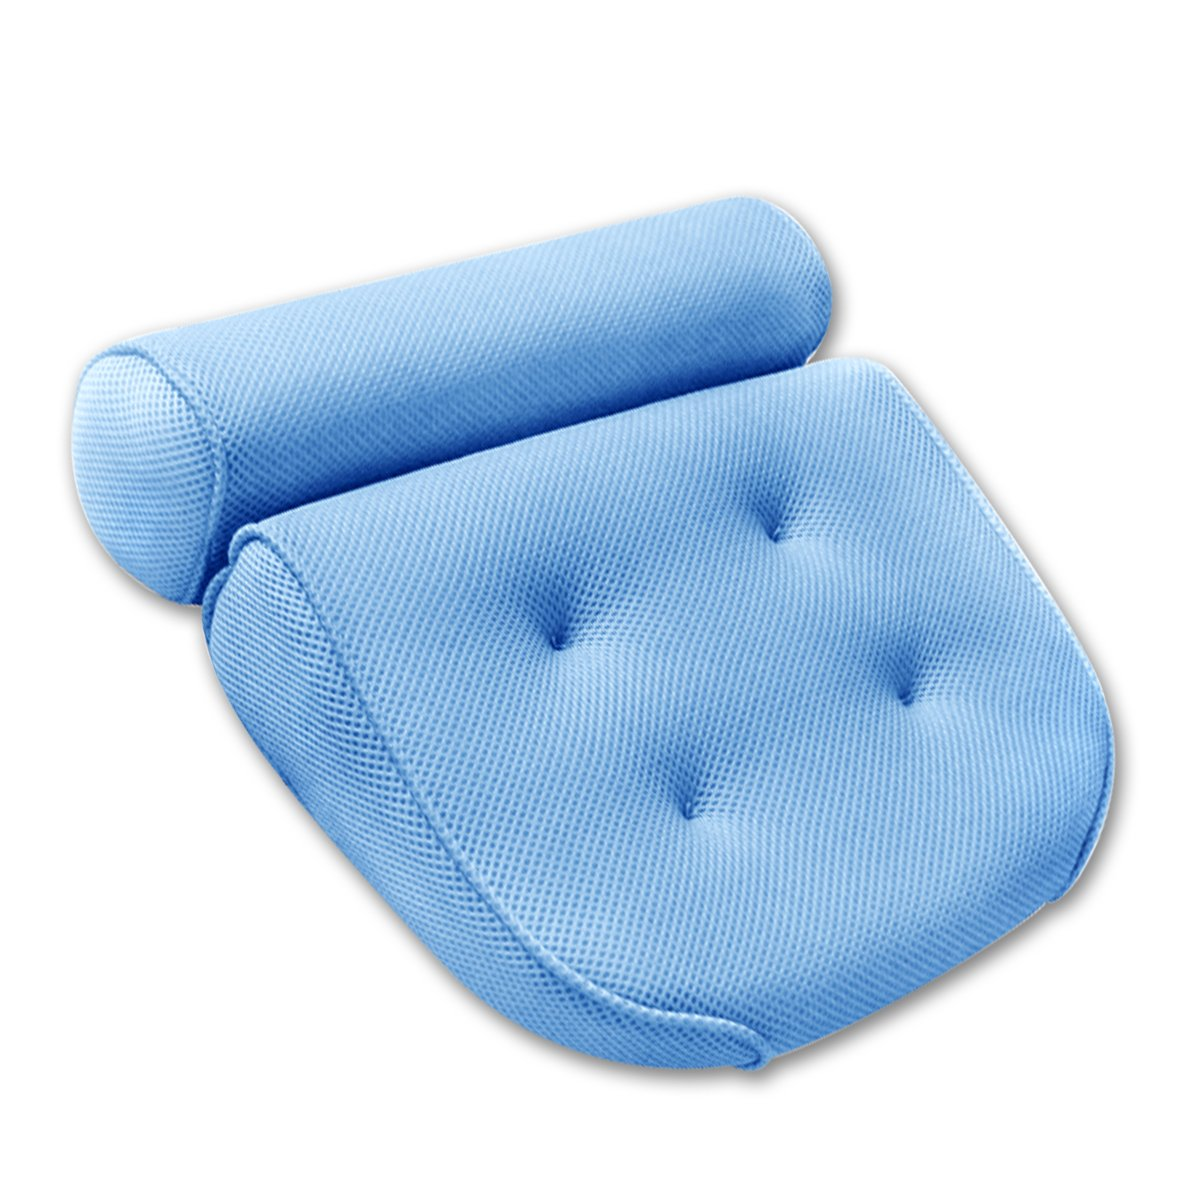 AntArt Bath-tub Pillow for Home Spa and Rest, Relaxation Bath tub Cushion with Strong Suction Cups, Mold & Mildew Resistant, 2-Panel Odor Free Bath Pillows - Blue